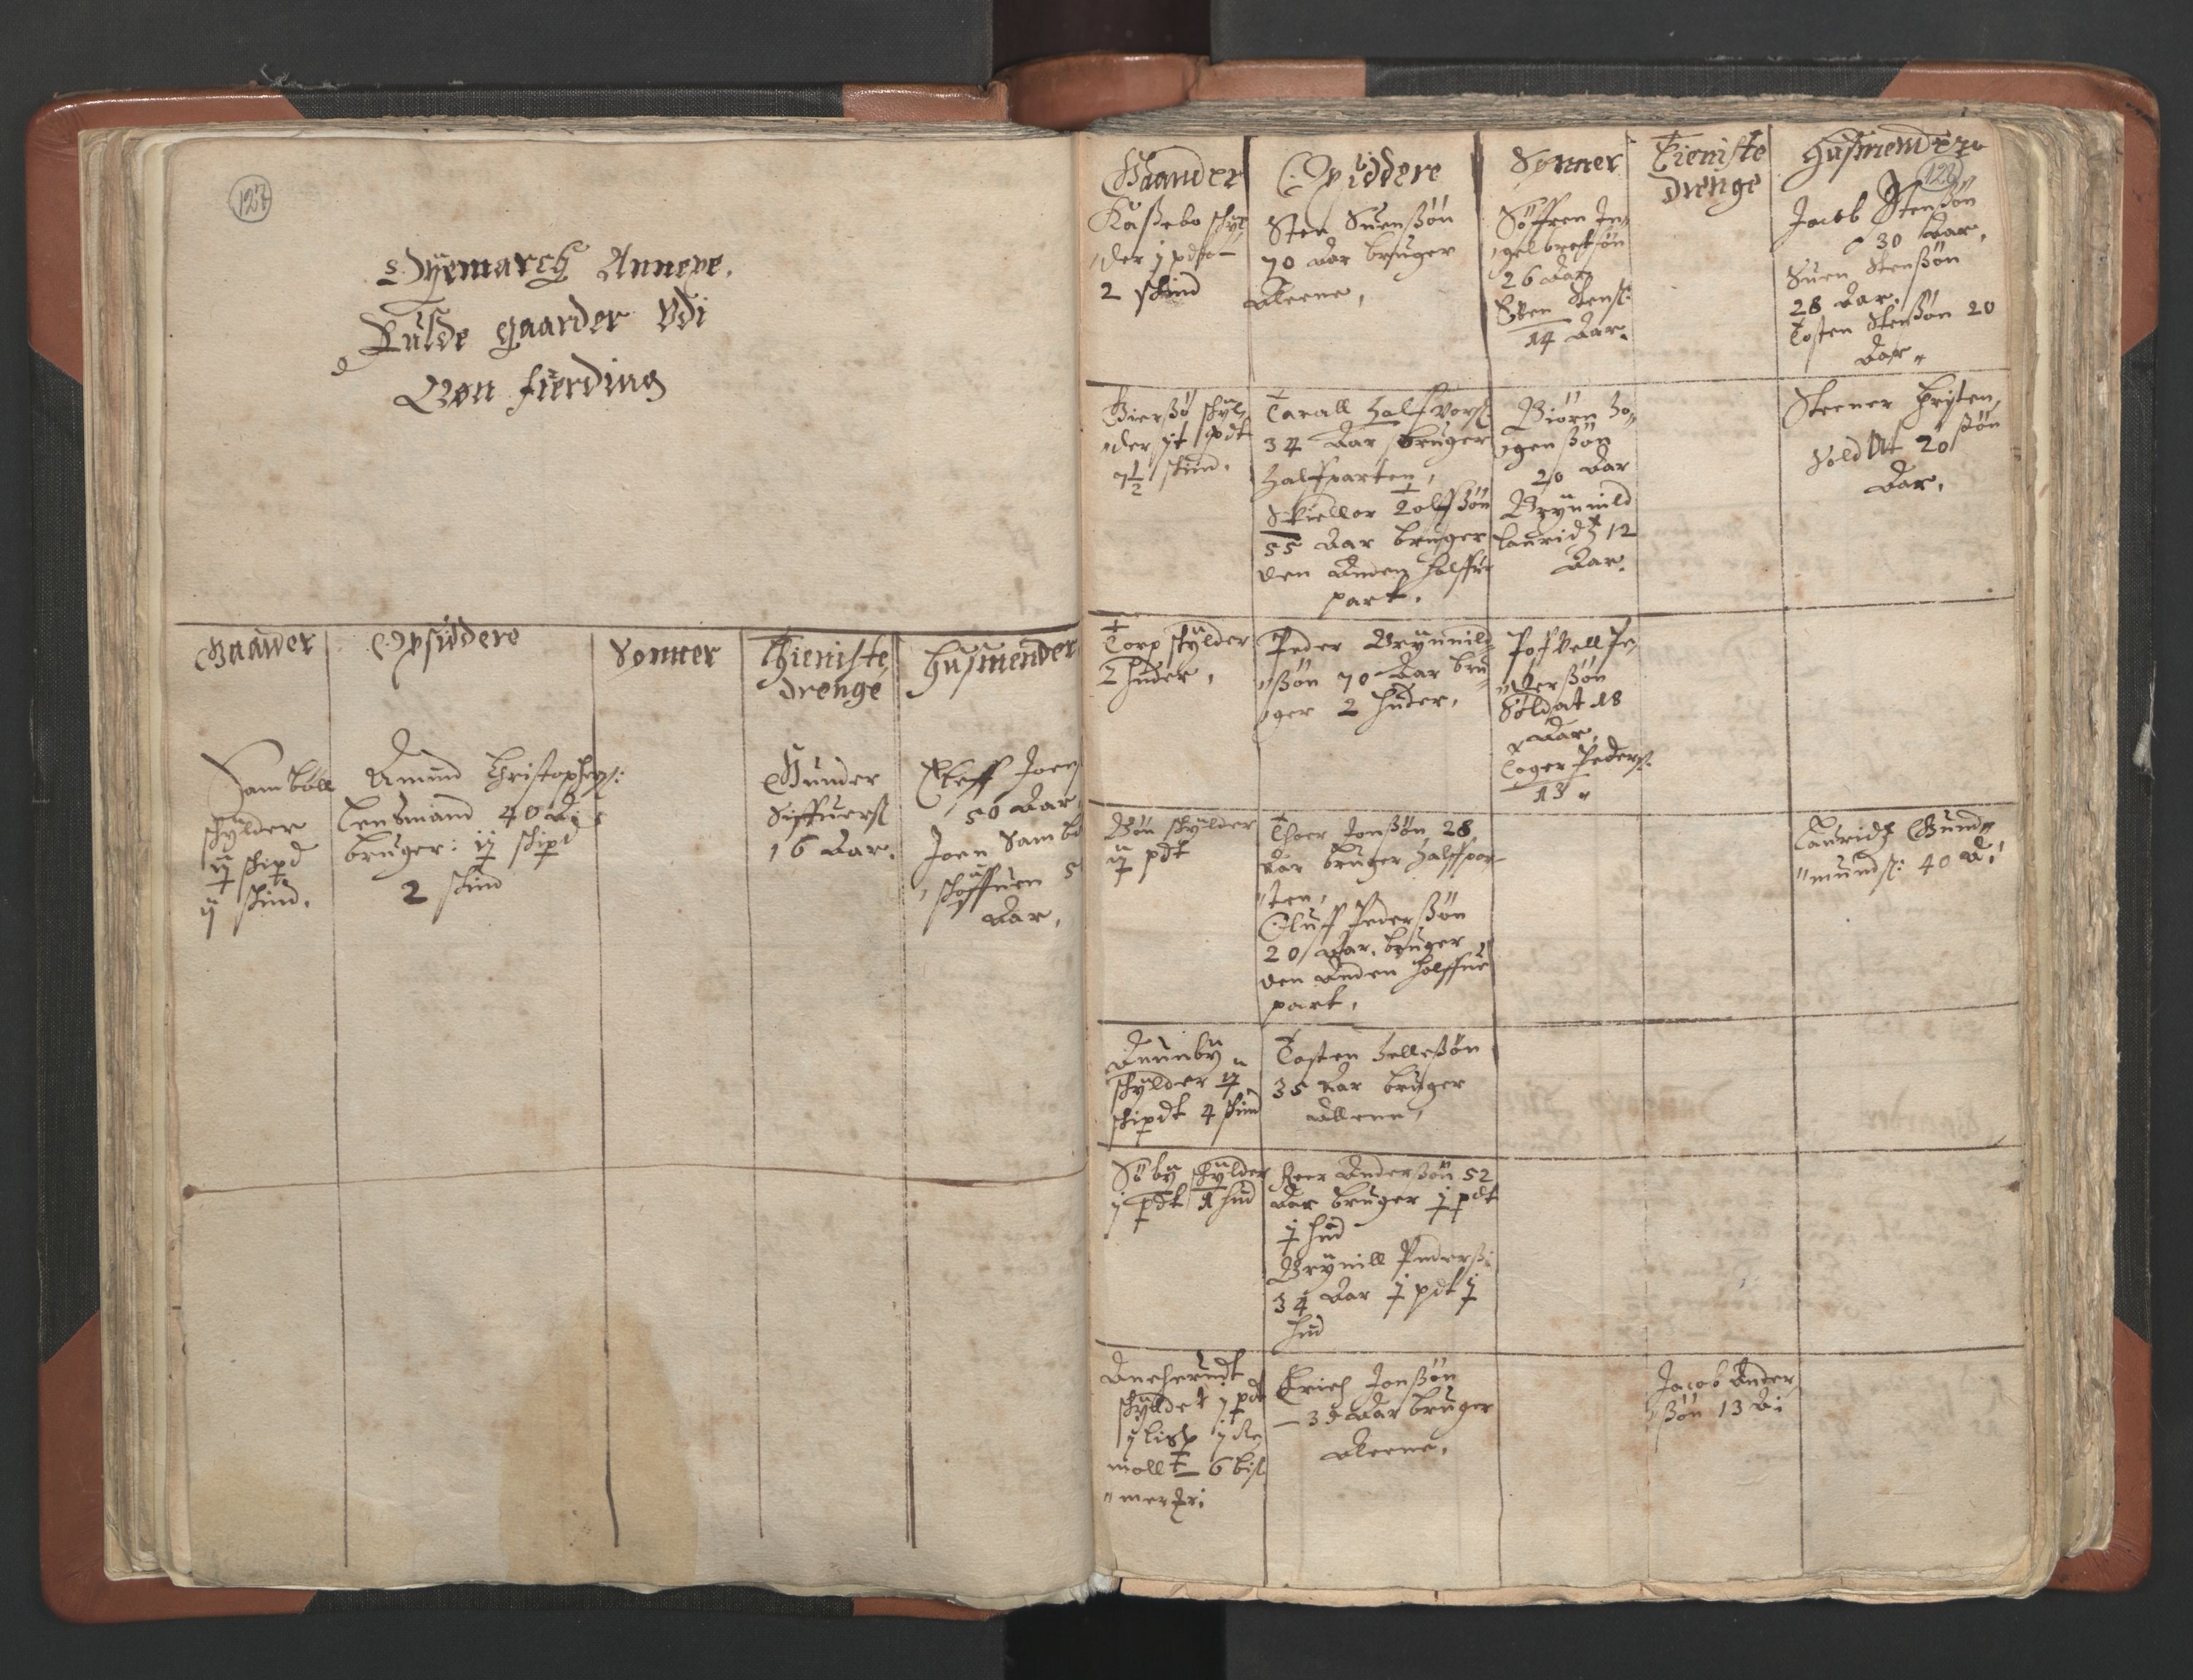 RA, Vicar's Census 1664-1666, no. 2: Øvre Borgesyssel deanery, 1664-1666, p. 127-128